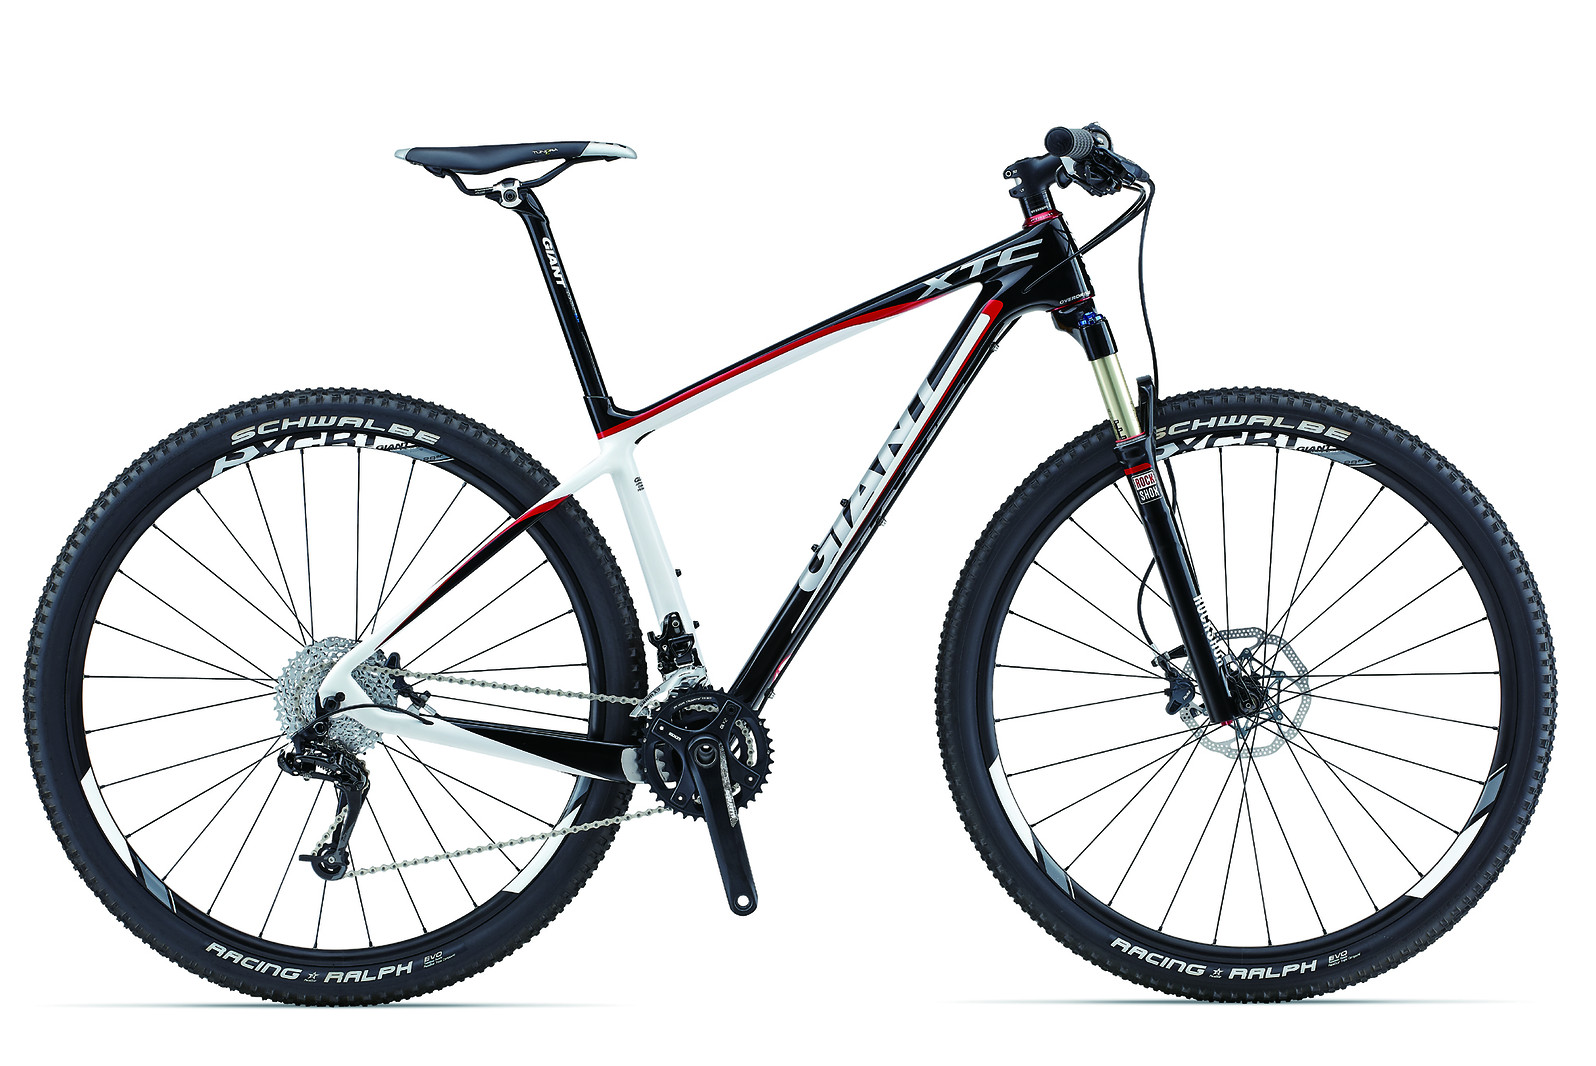 2013 Giant XTC Advanced SL 29er 1 Bike XtC_Advanced_SL_29er_1